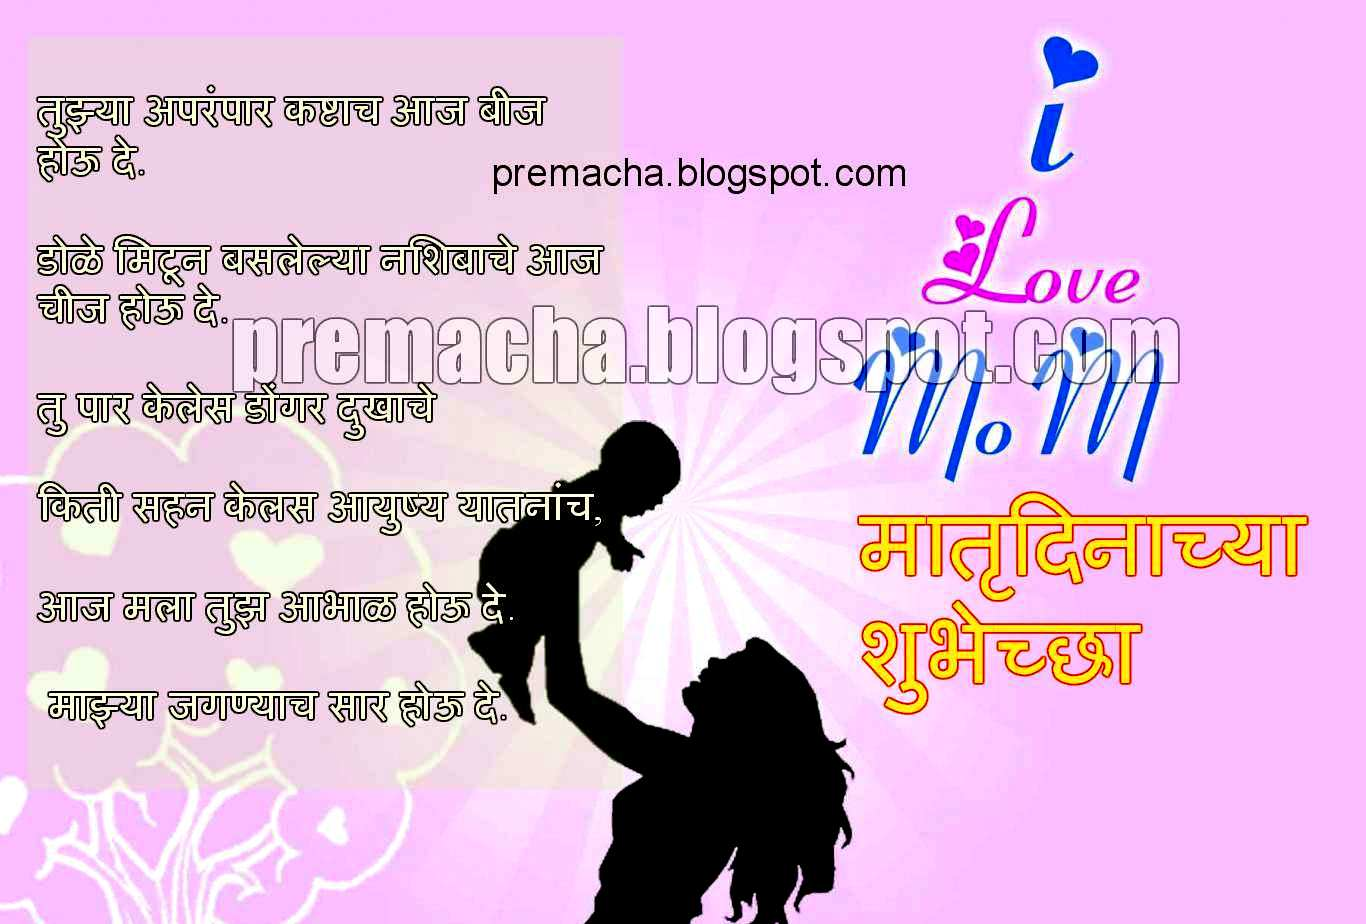 Mothers day marathi greetings wallpaper marathi kavita love mothers day marathi greetings wallpaper m4hsunfo